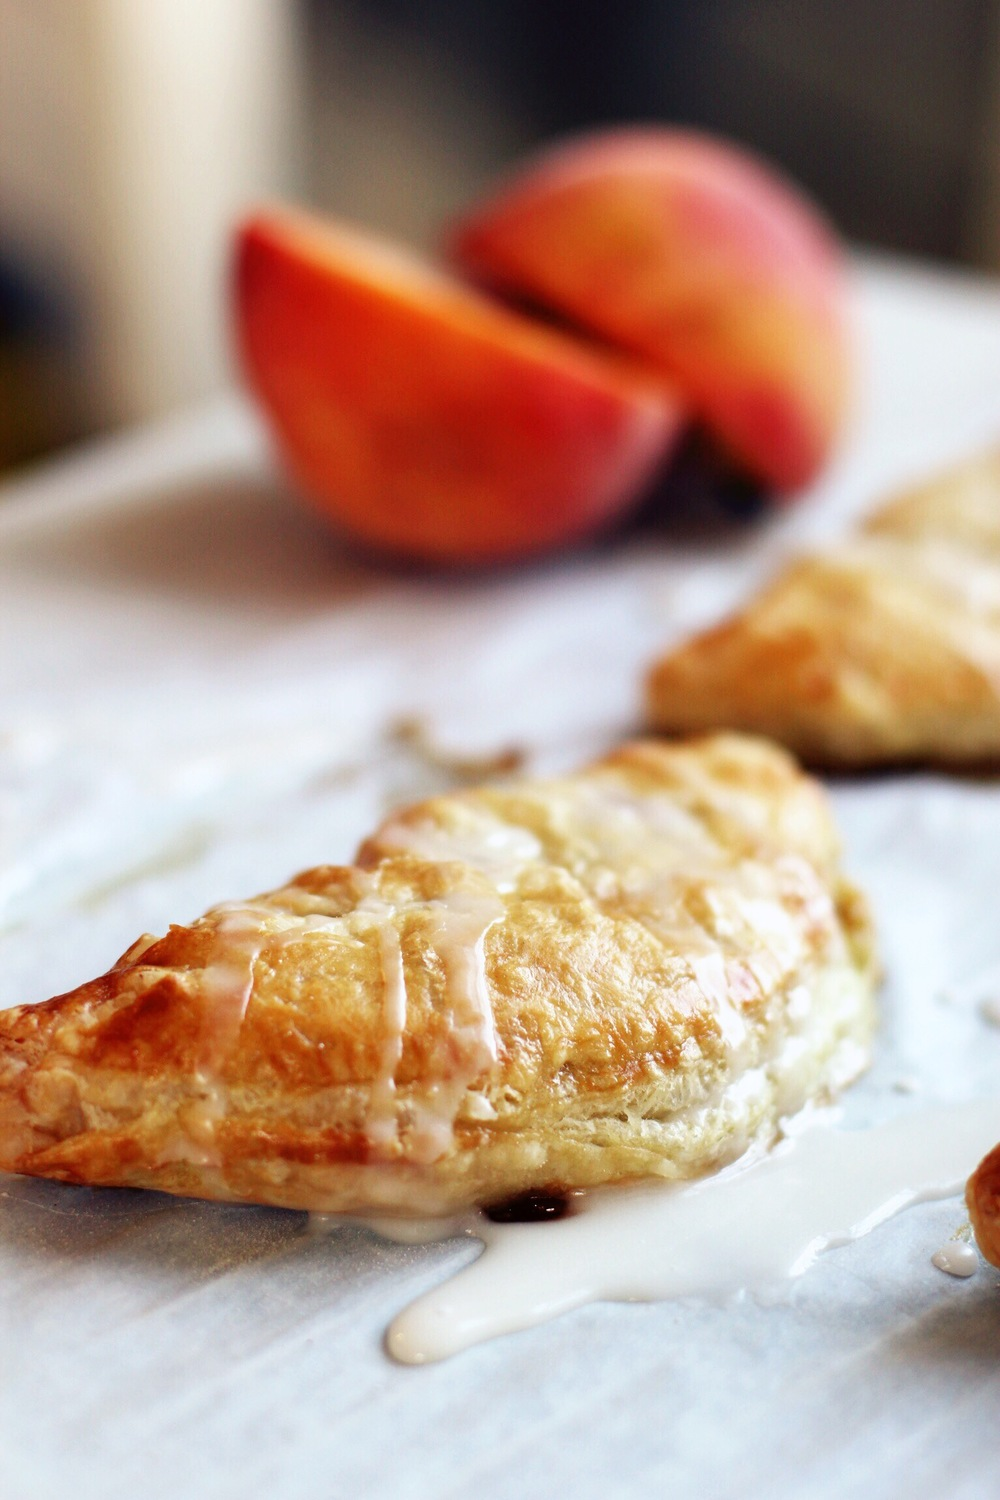 Peach turnovers with almond glaze- The Pastiche